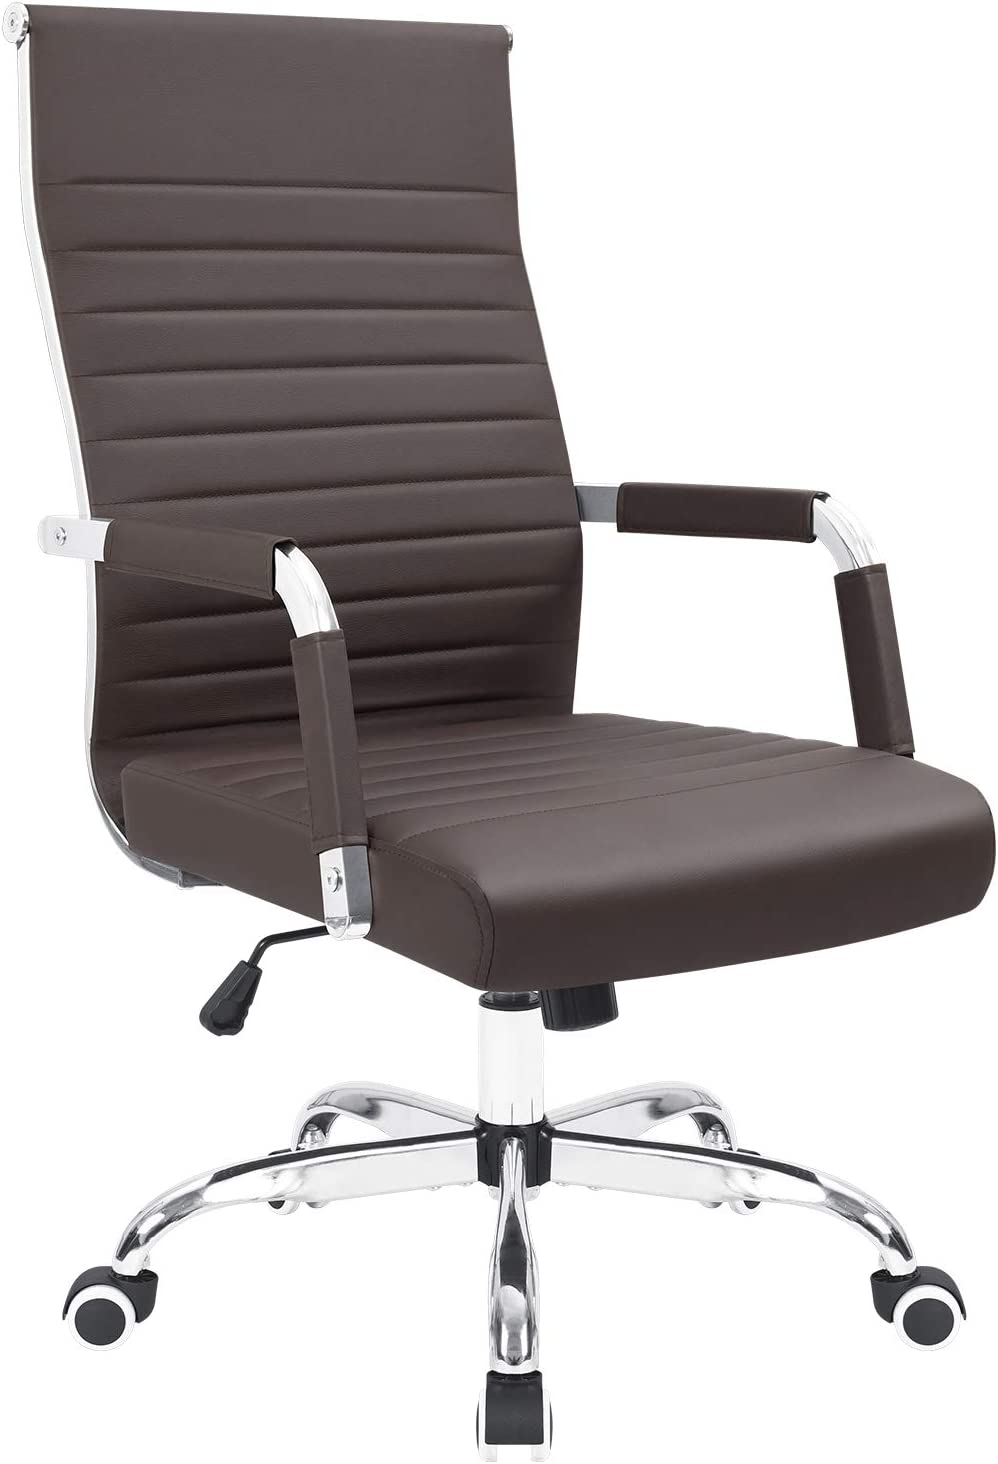 KaiMeng Ribbed Office Chair Mid Back Desk Chair Adjustable Swivel Task Chair Conference Executive Chair (Brown)